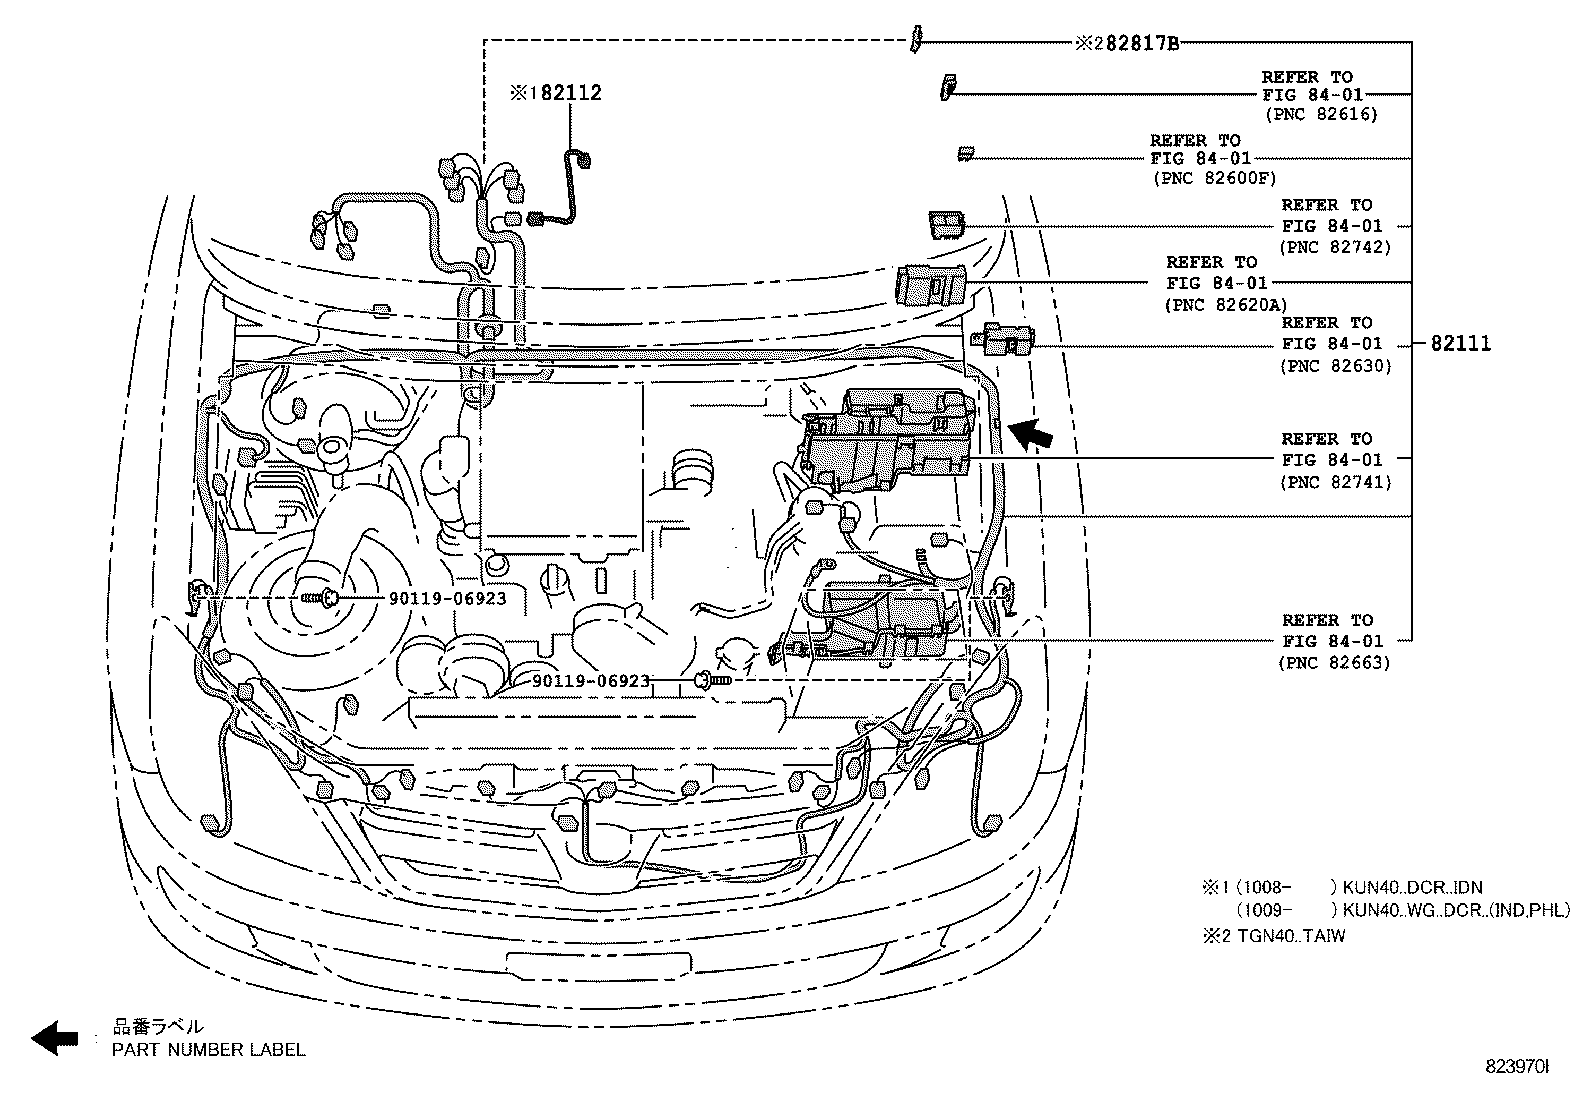 Toyota Innova Wiring Diagram Azw Download Rn6q